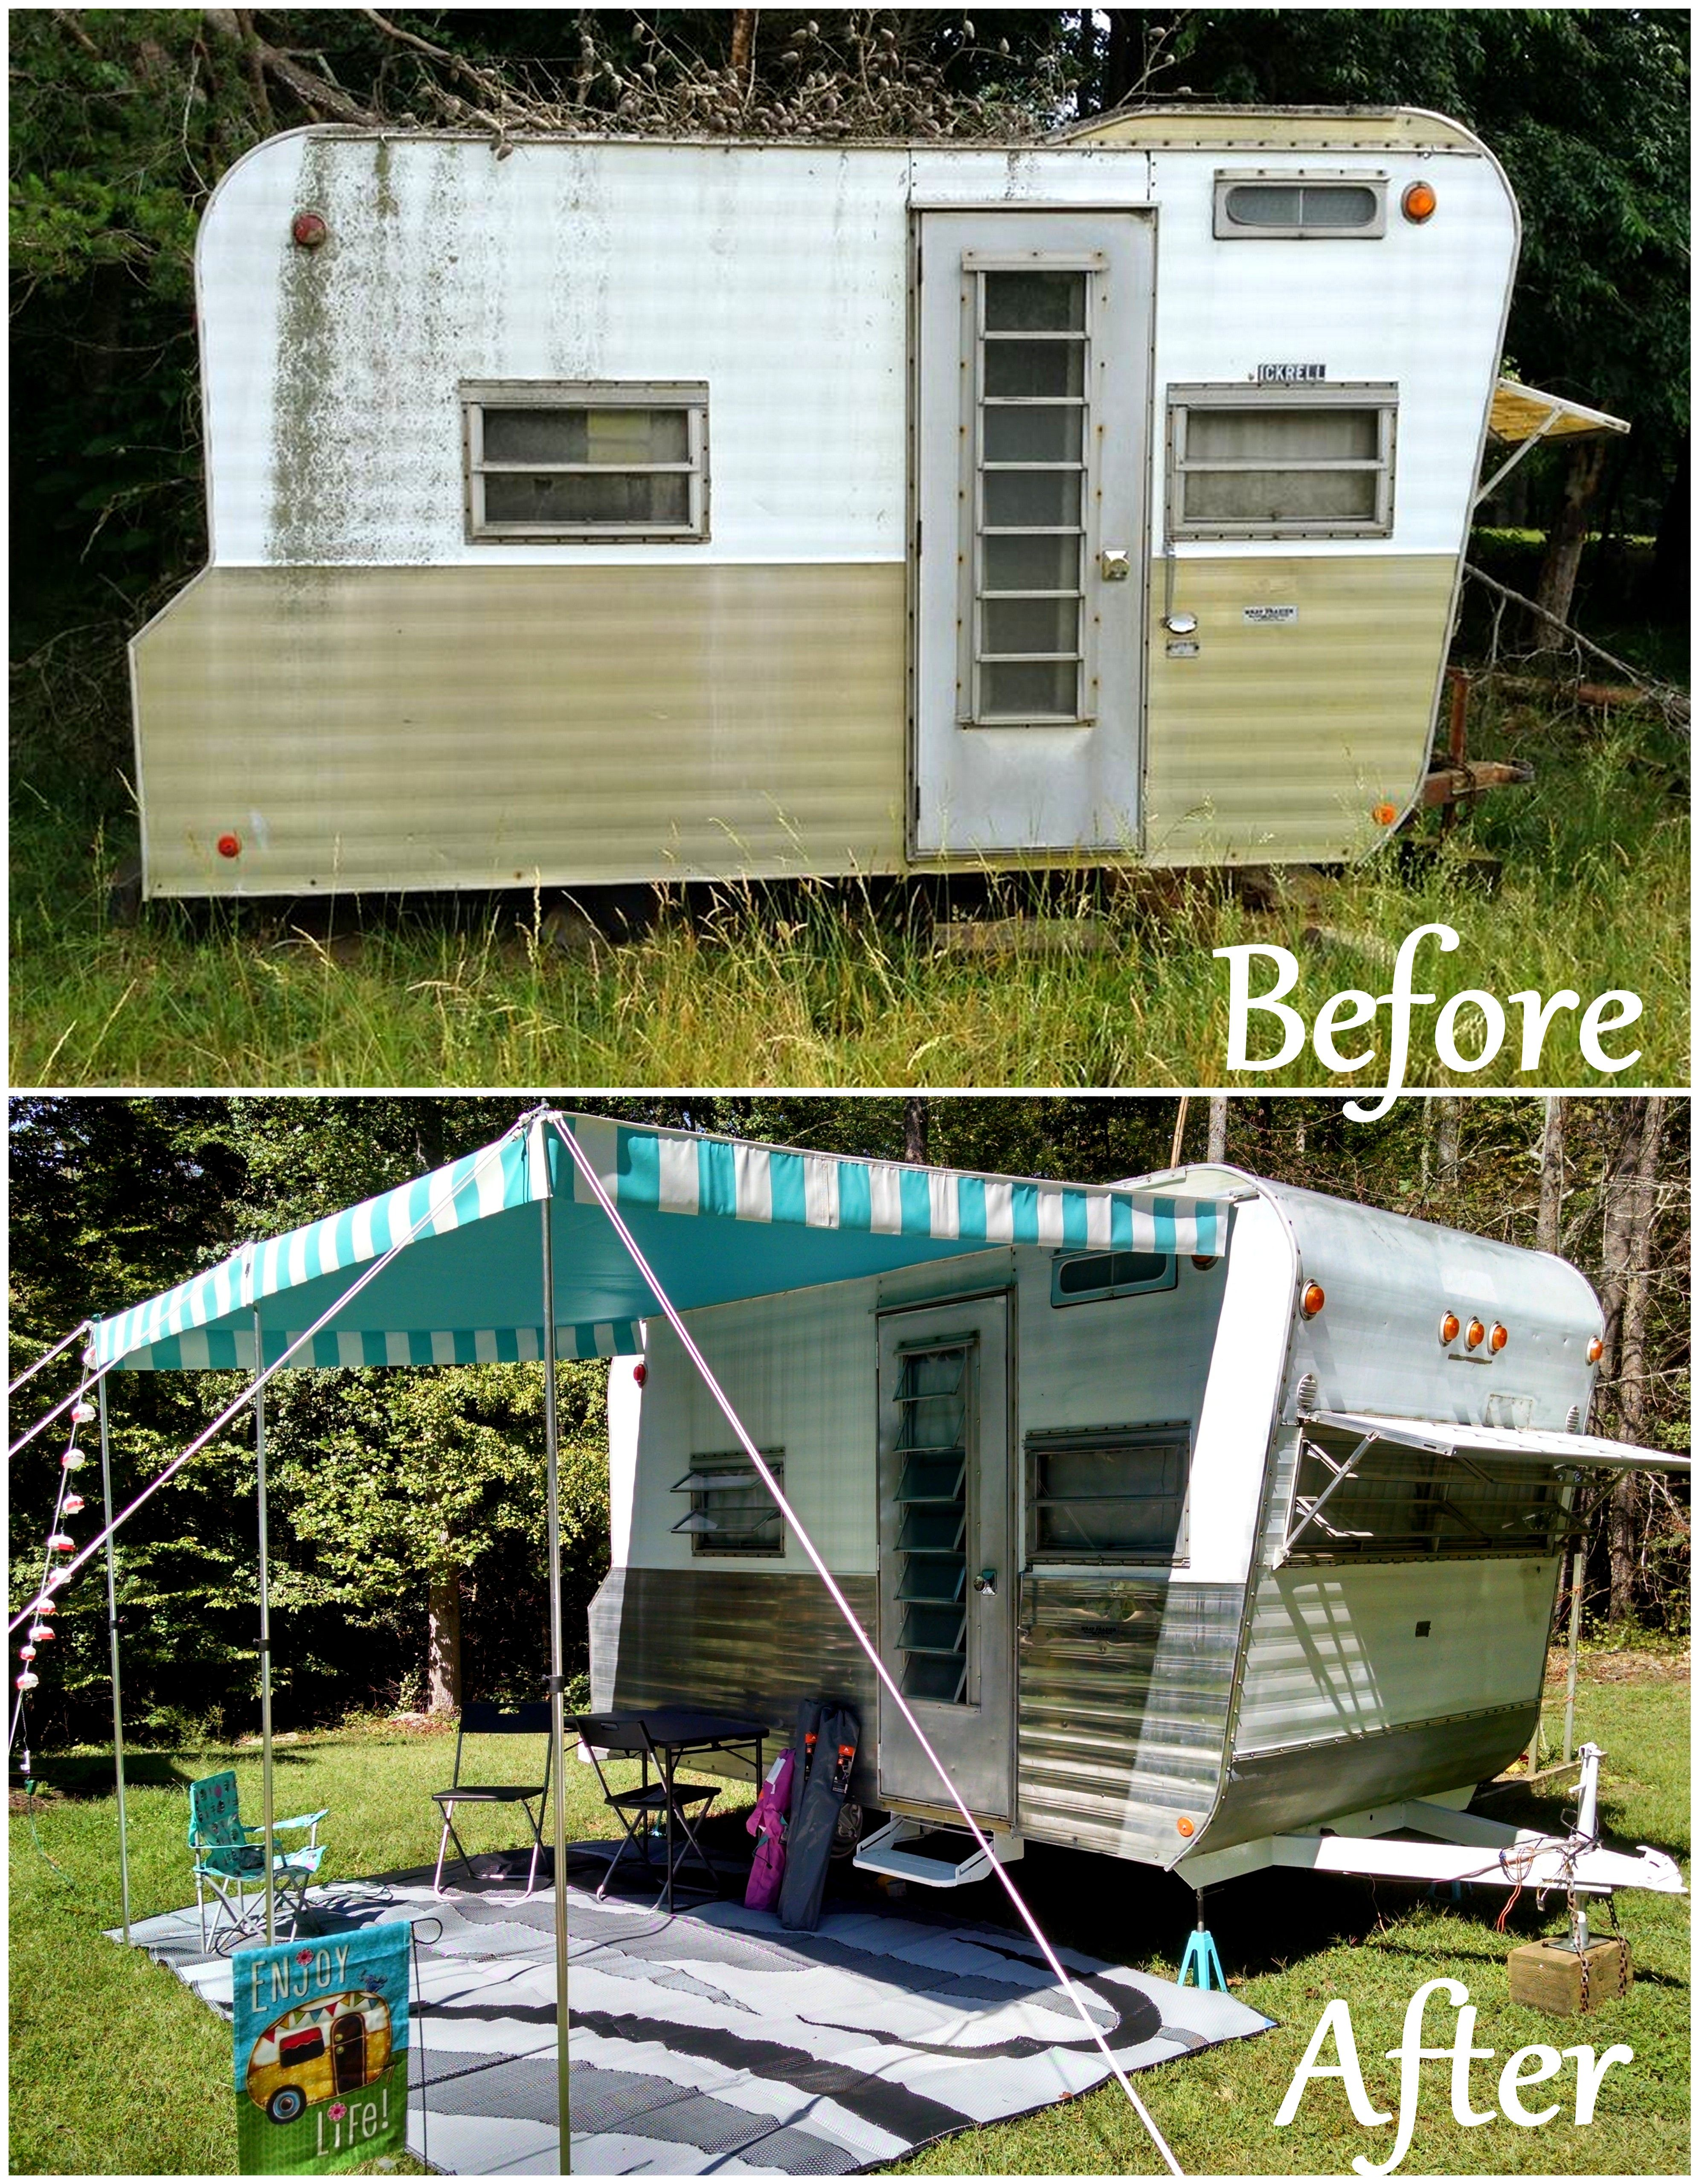 Pin By Tina Mitchell On Vintage Campers In 2020 Vintage Camper Remodel Vintage Camper Remodeled Campers